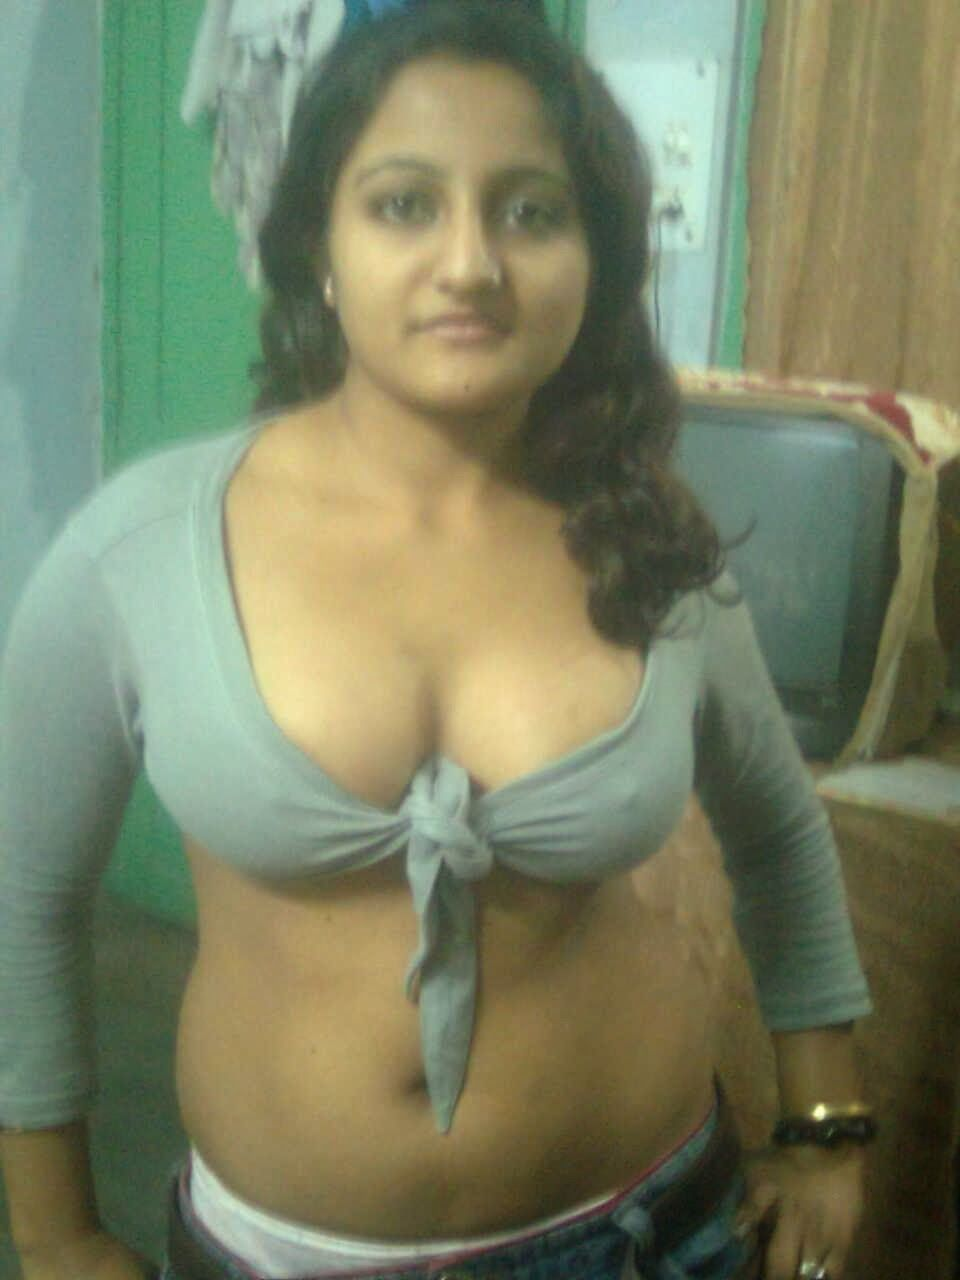 tit local cleavage girl photos tamil